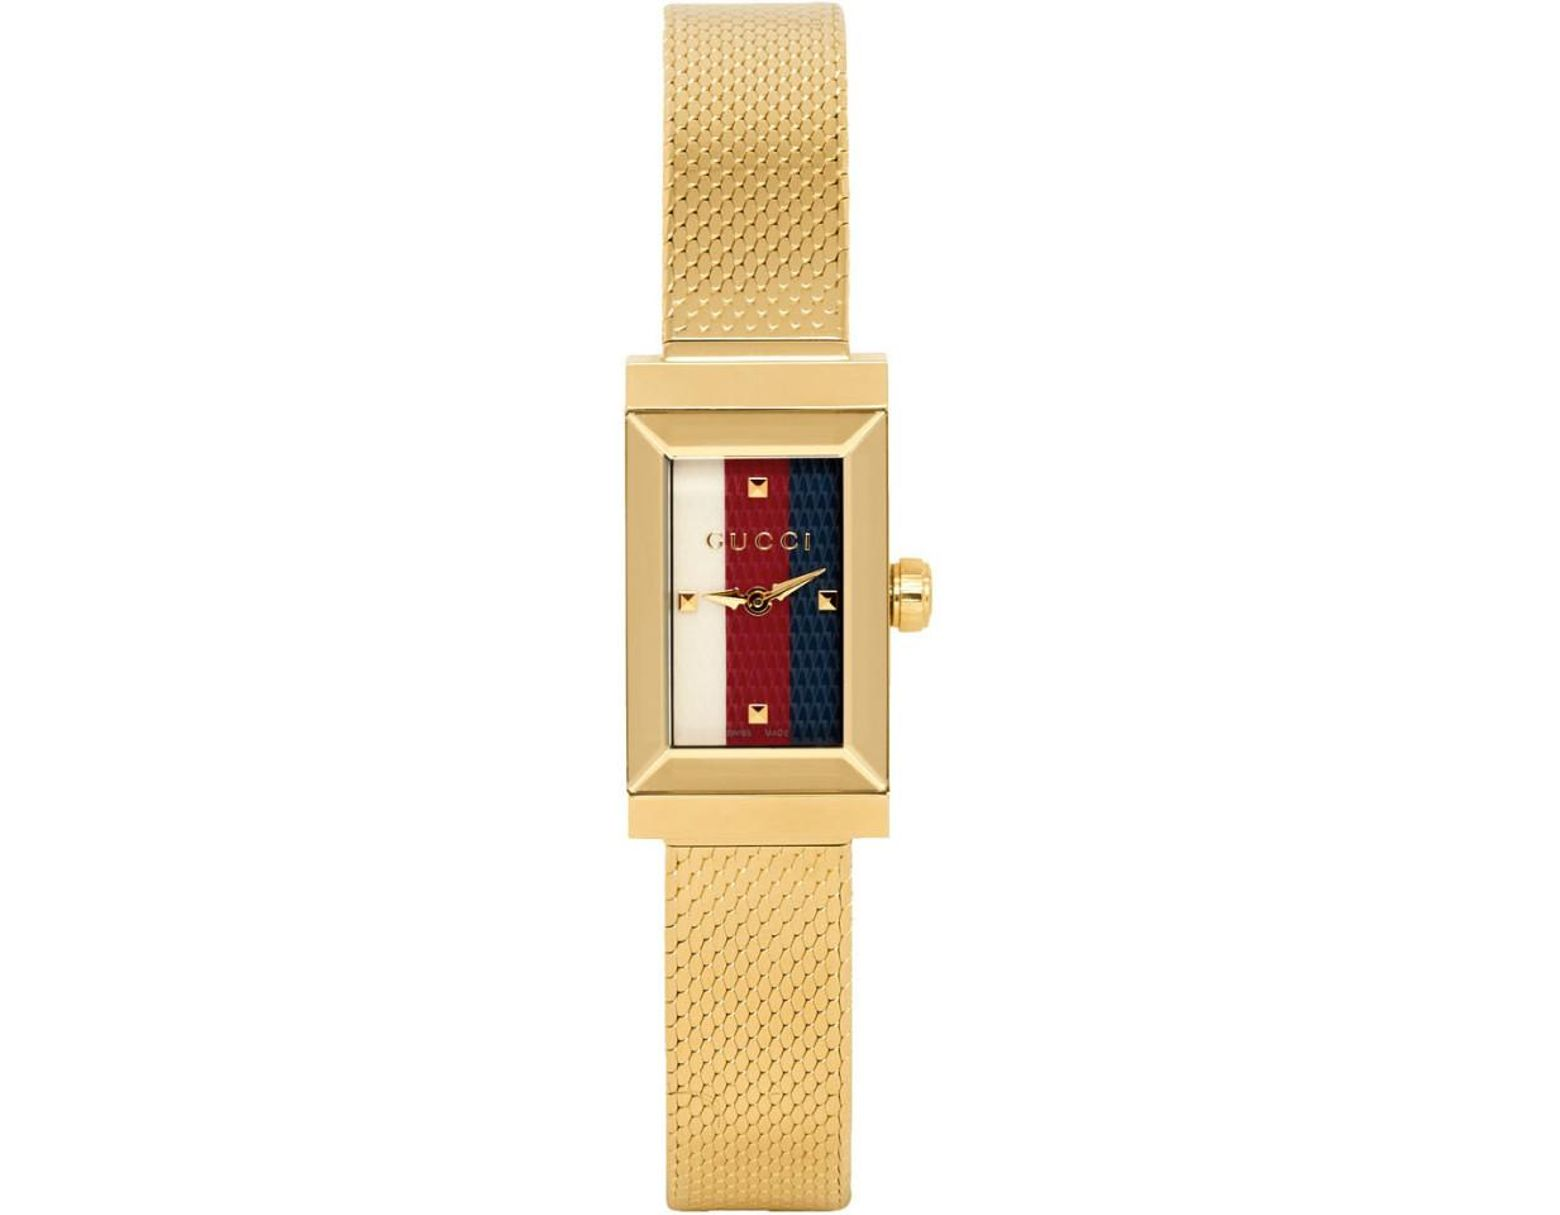 bf7effabe89 Lyst - Gucci Gold G-frame Slim Watch in Metallic